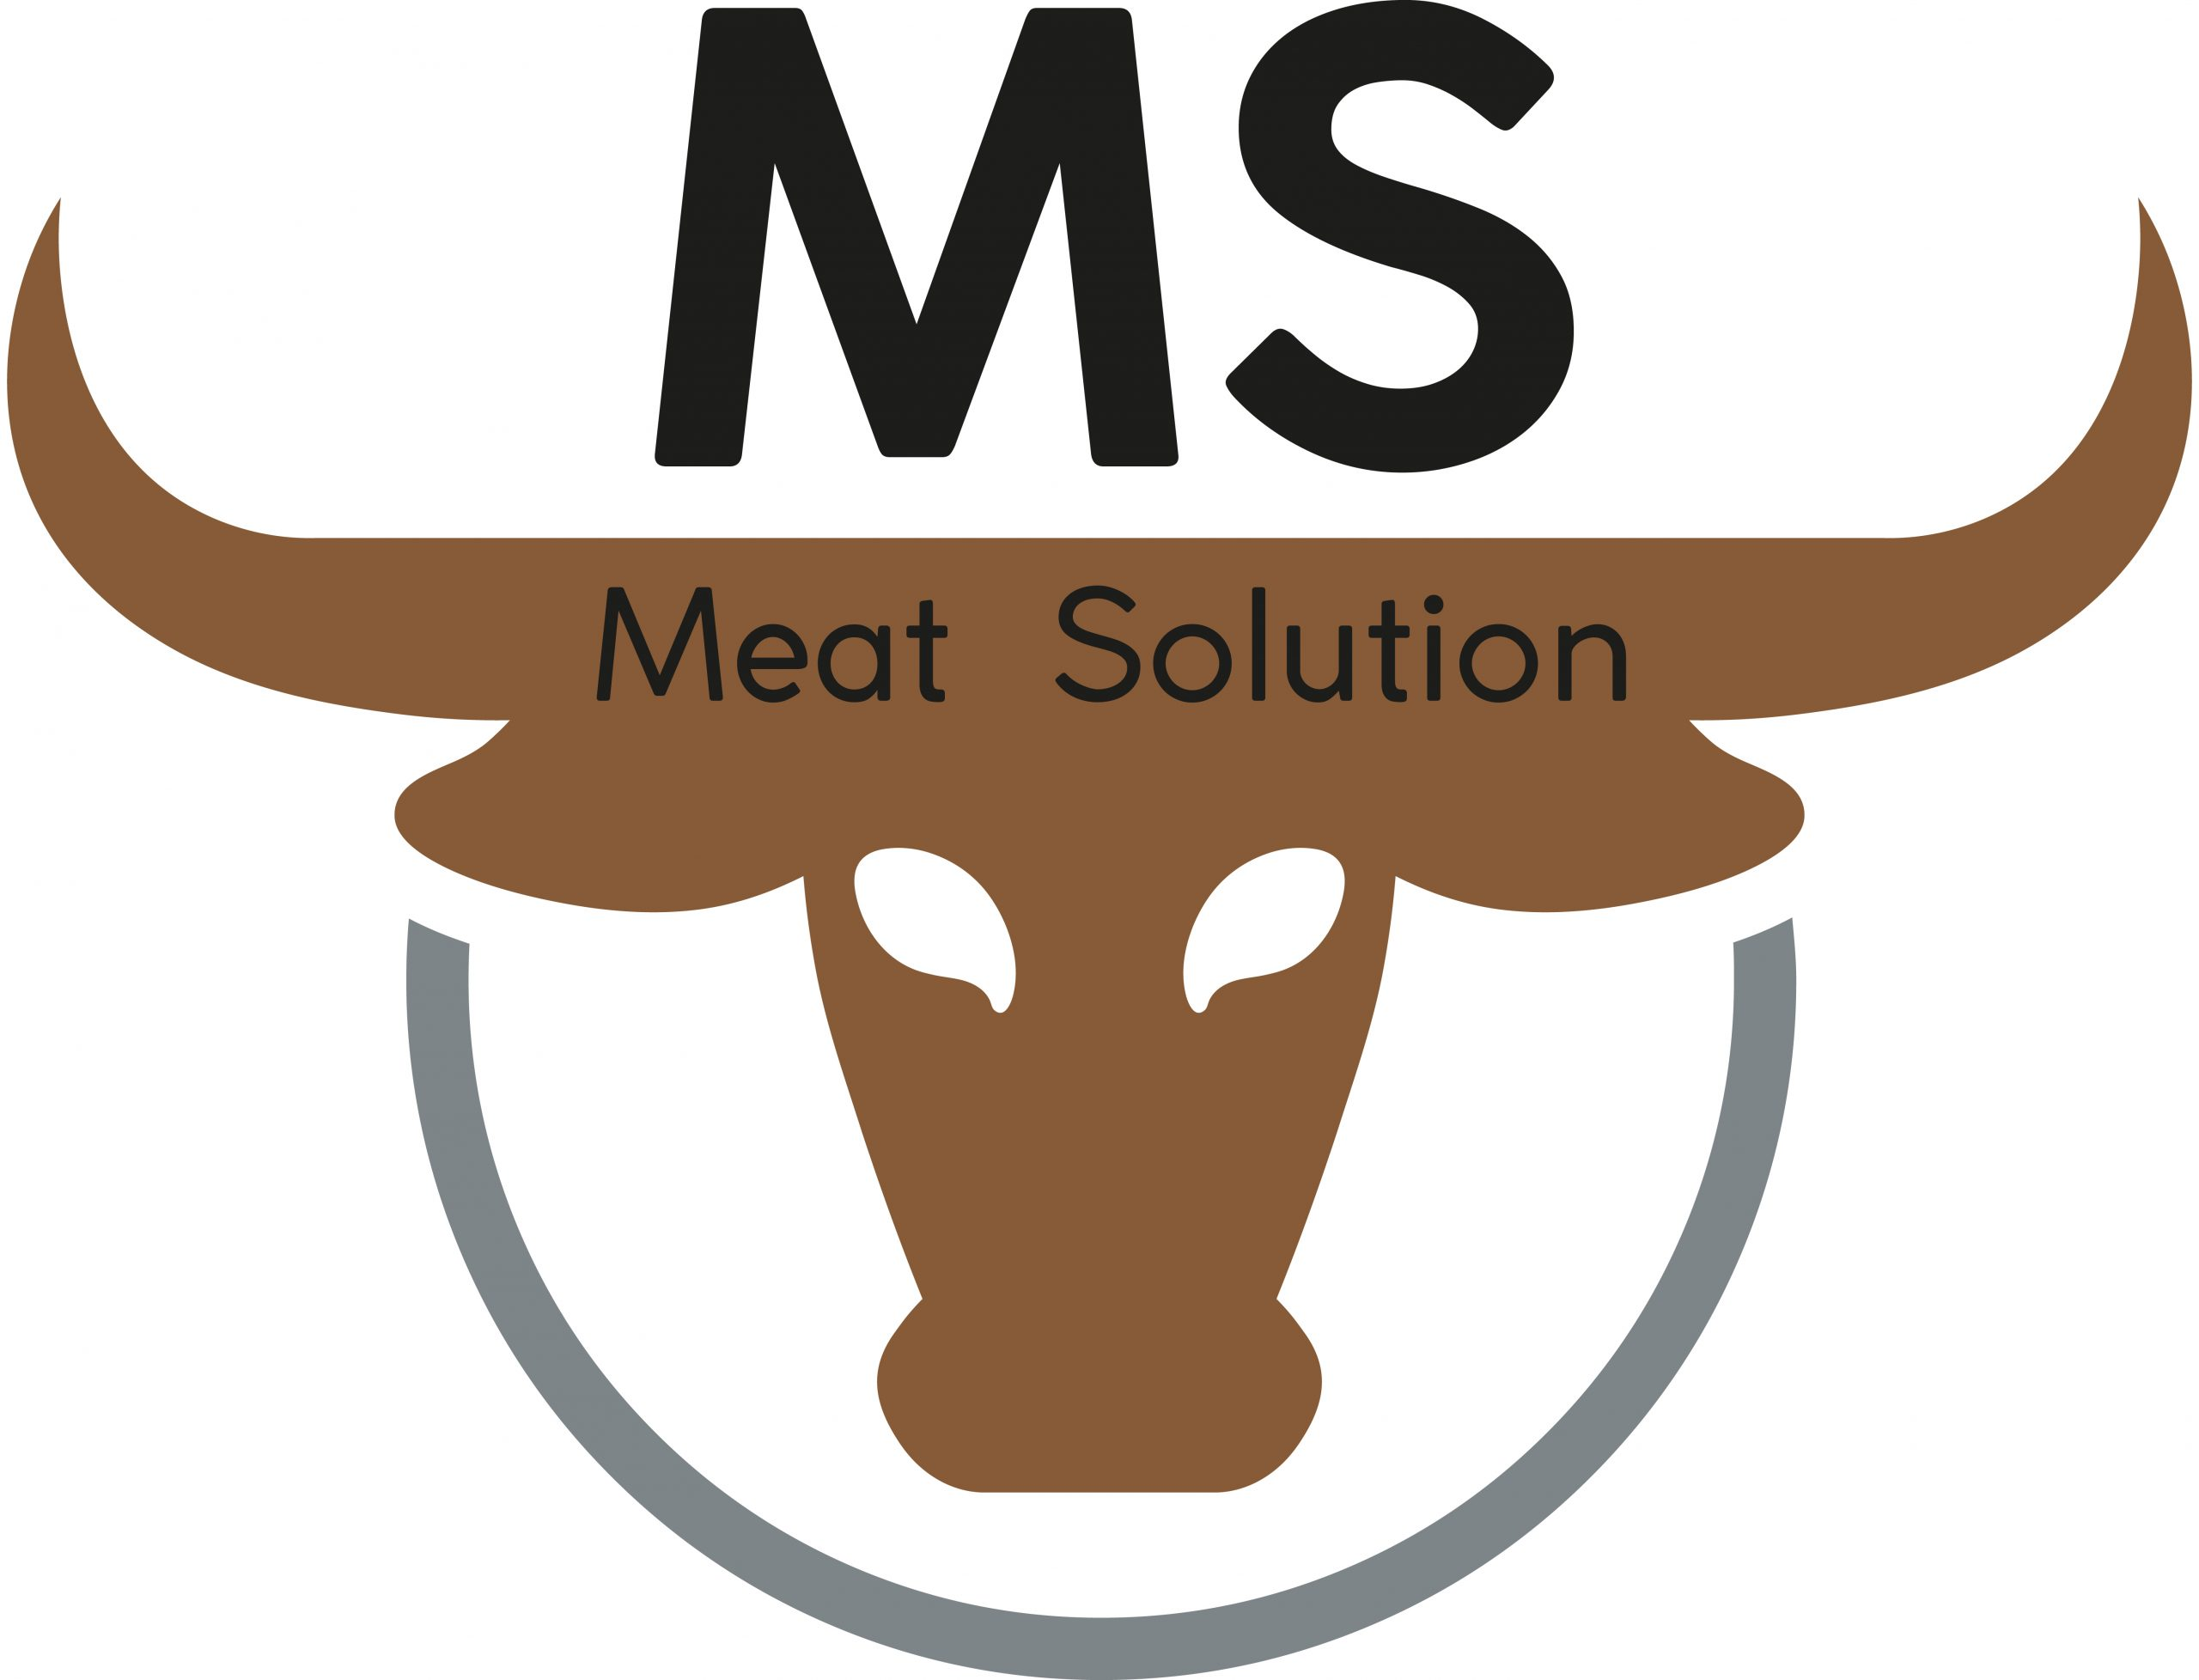 Meat Solution